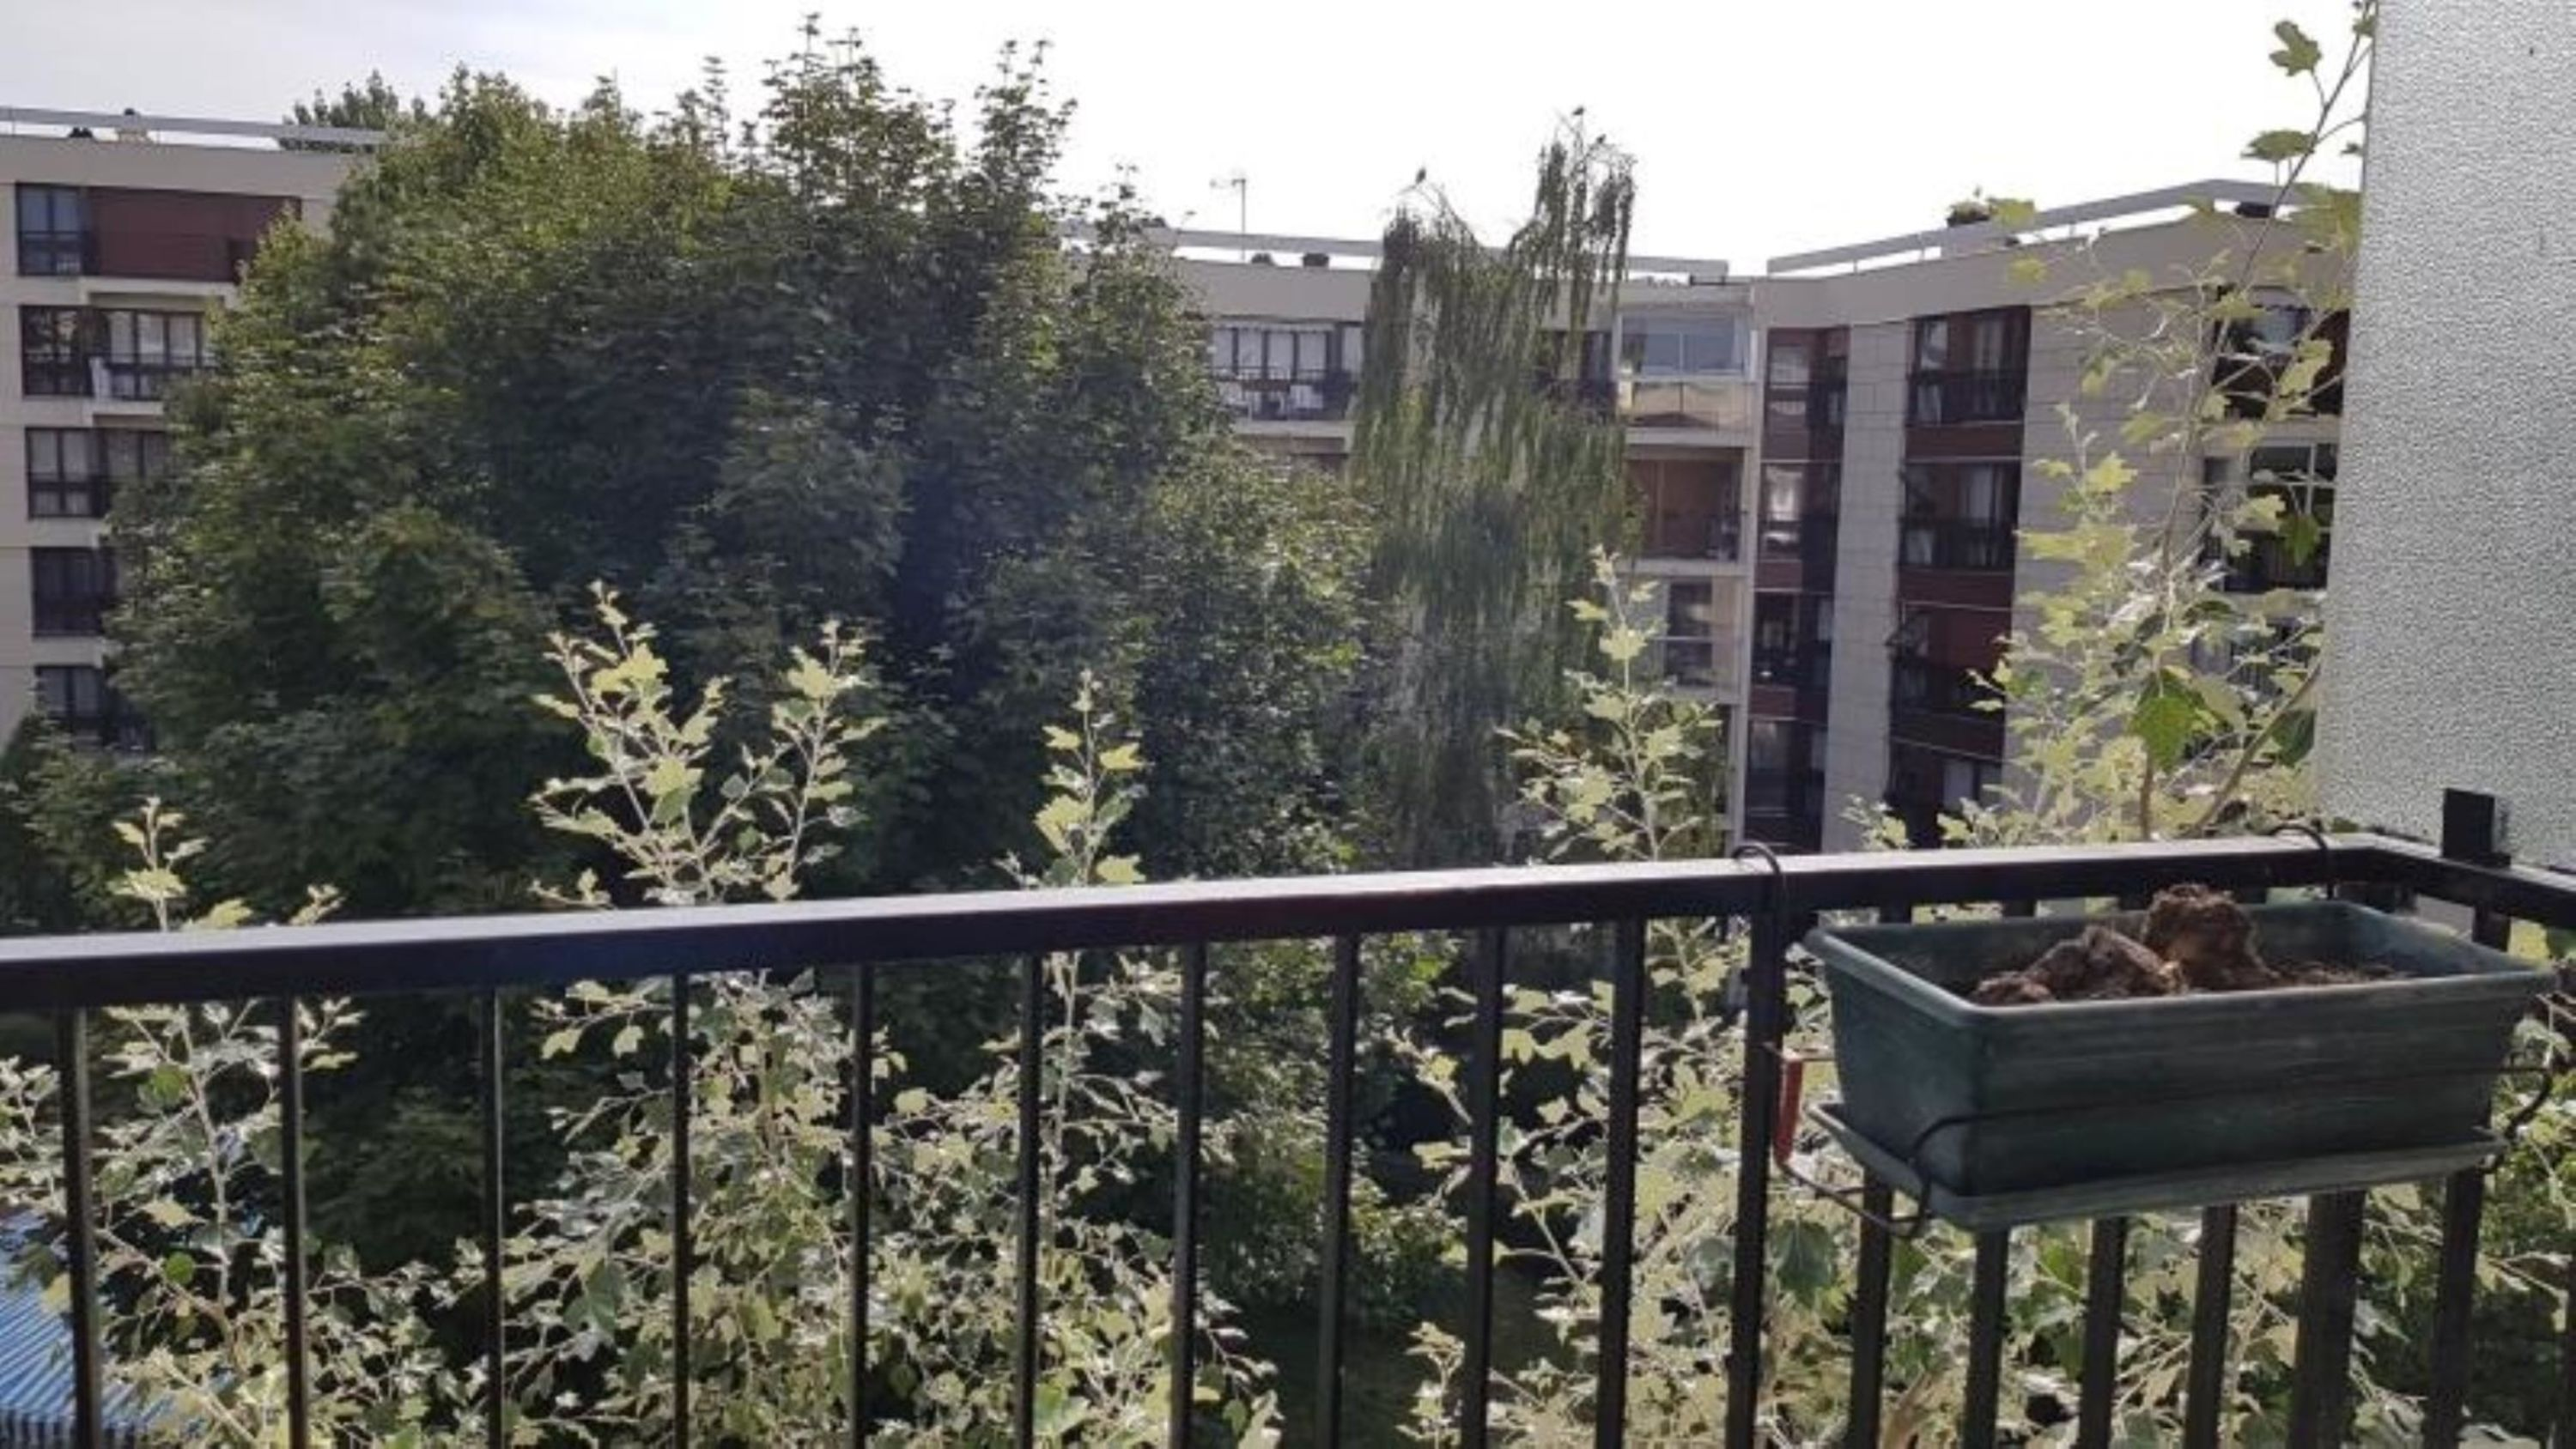 agence immobilière sevres 92 le chesnay 78 achat vente location appartement maison immobilier LMHT ANF QCIKZKKU